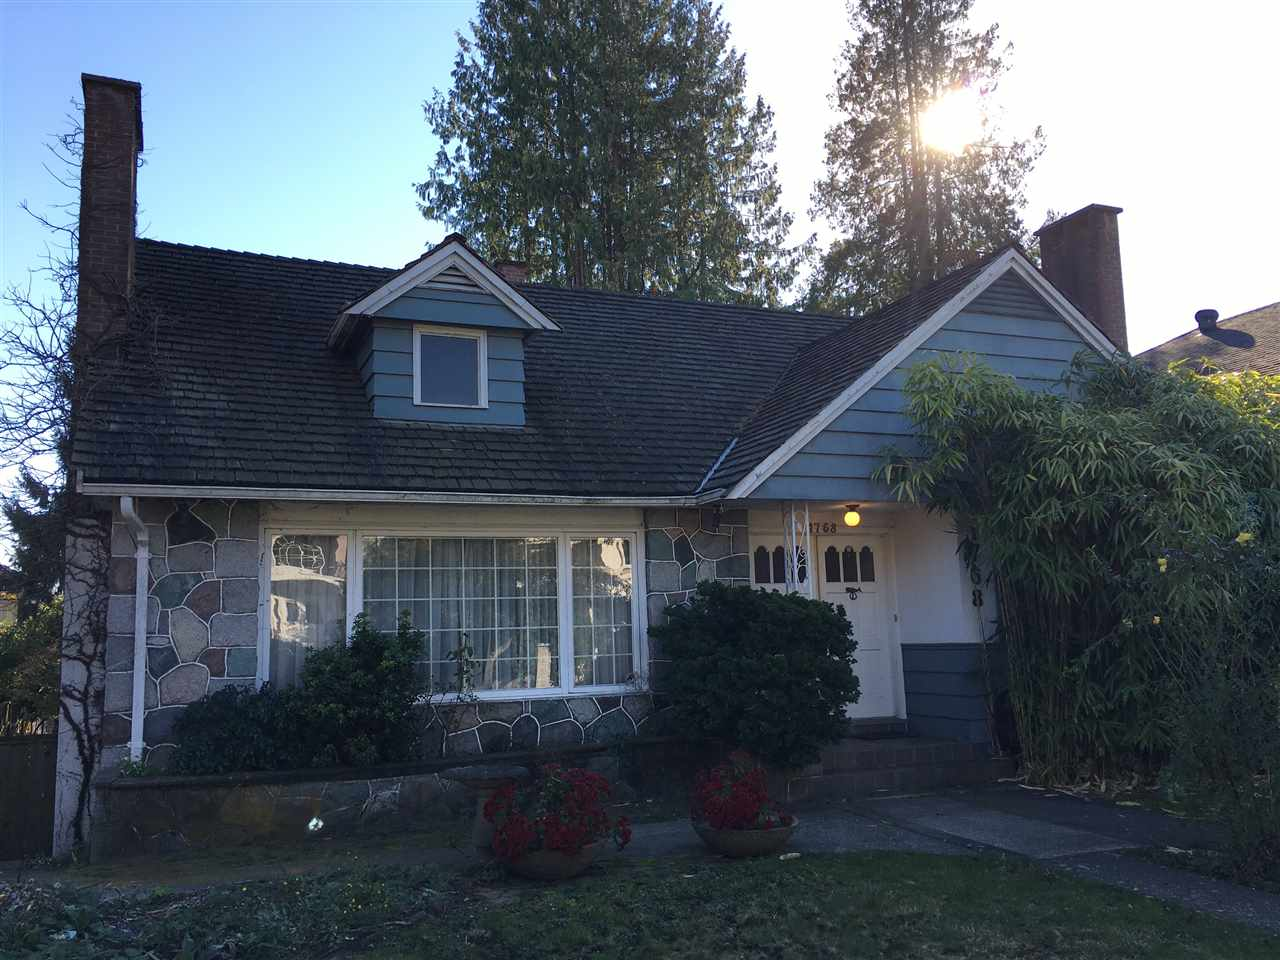 Photo 2: 1768 W 61ST Avenue in Vancouver: South Granville House for sale (Vancouver West)  : MLS® # R2120423